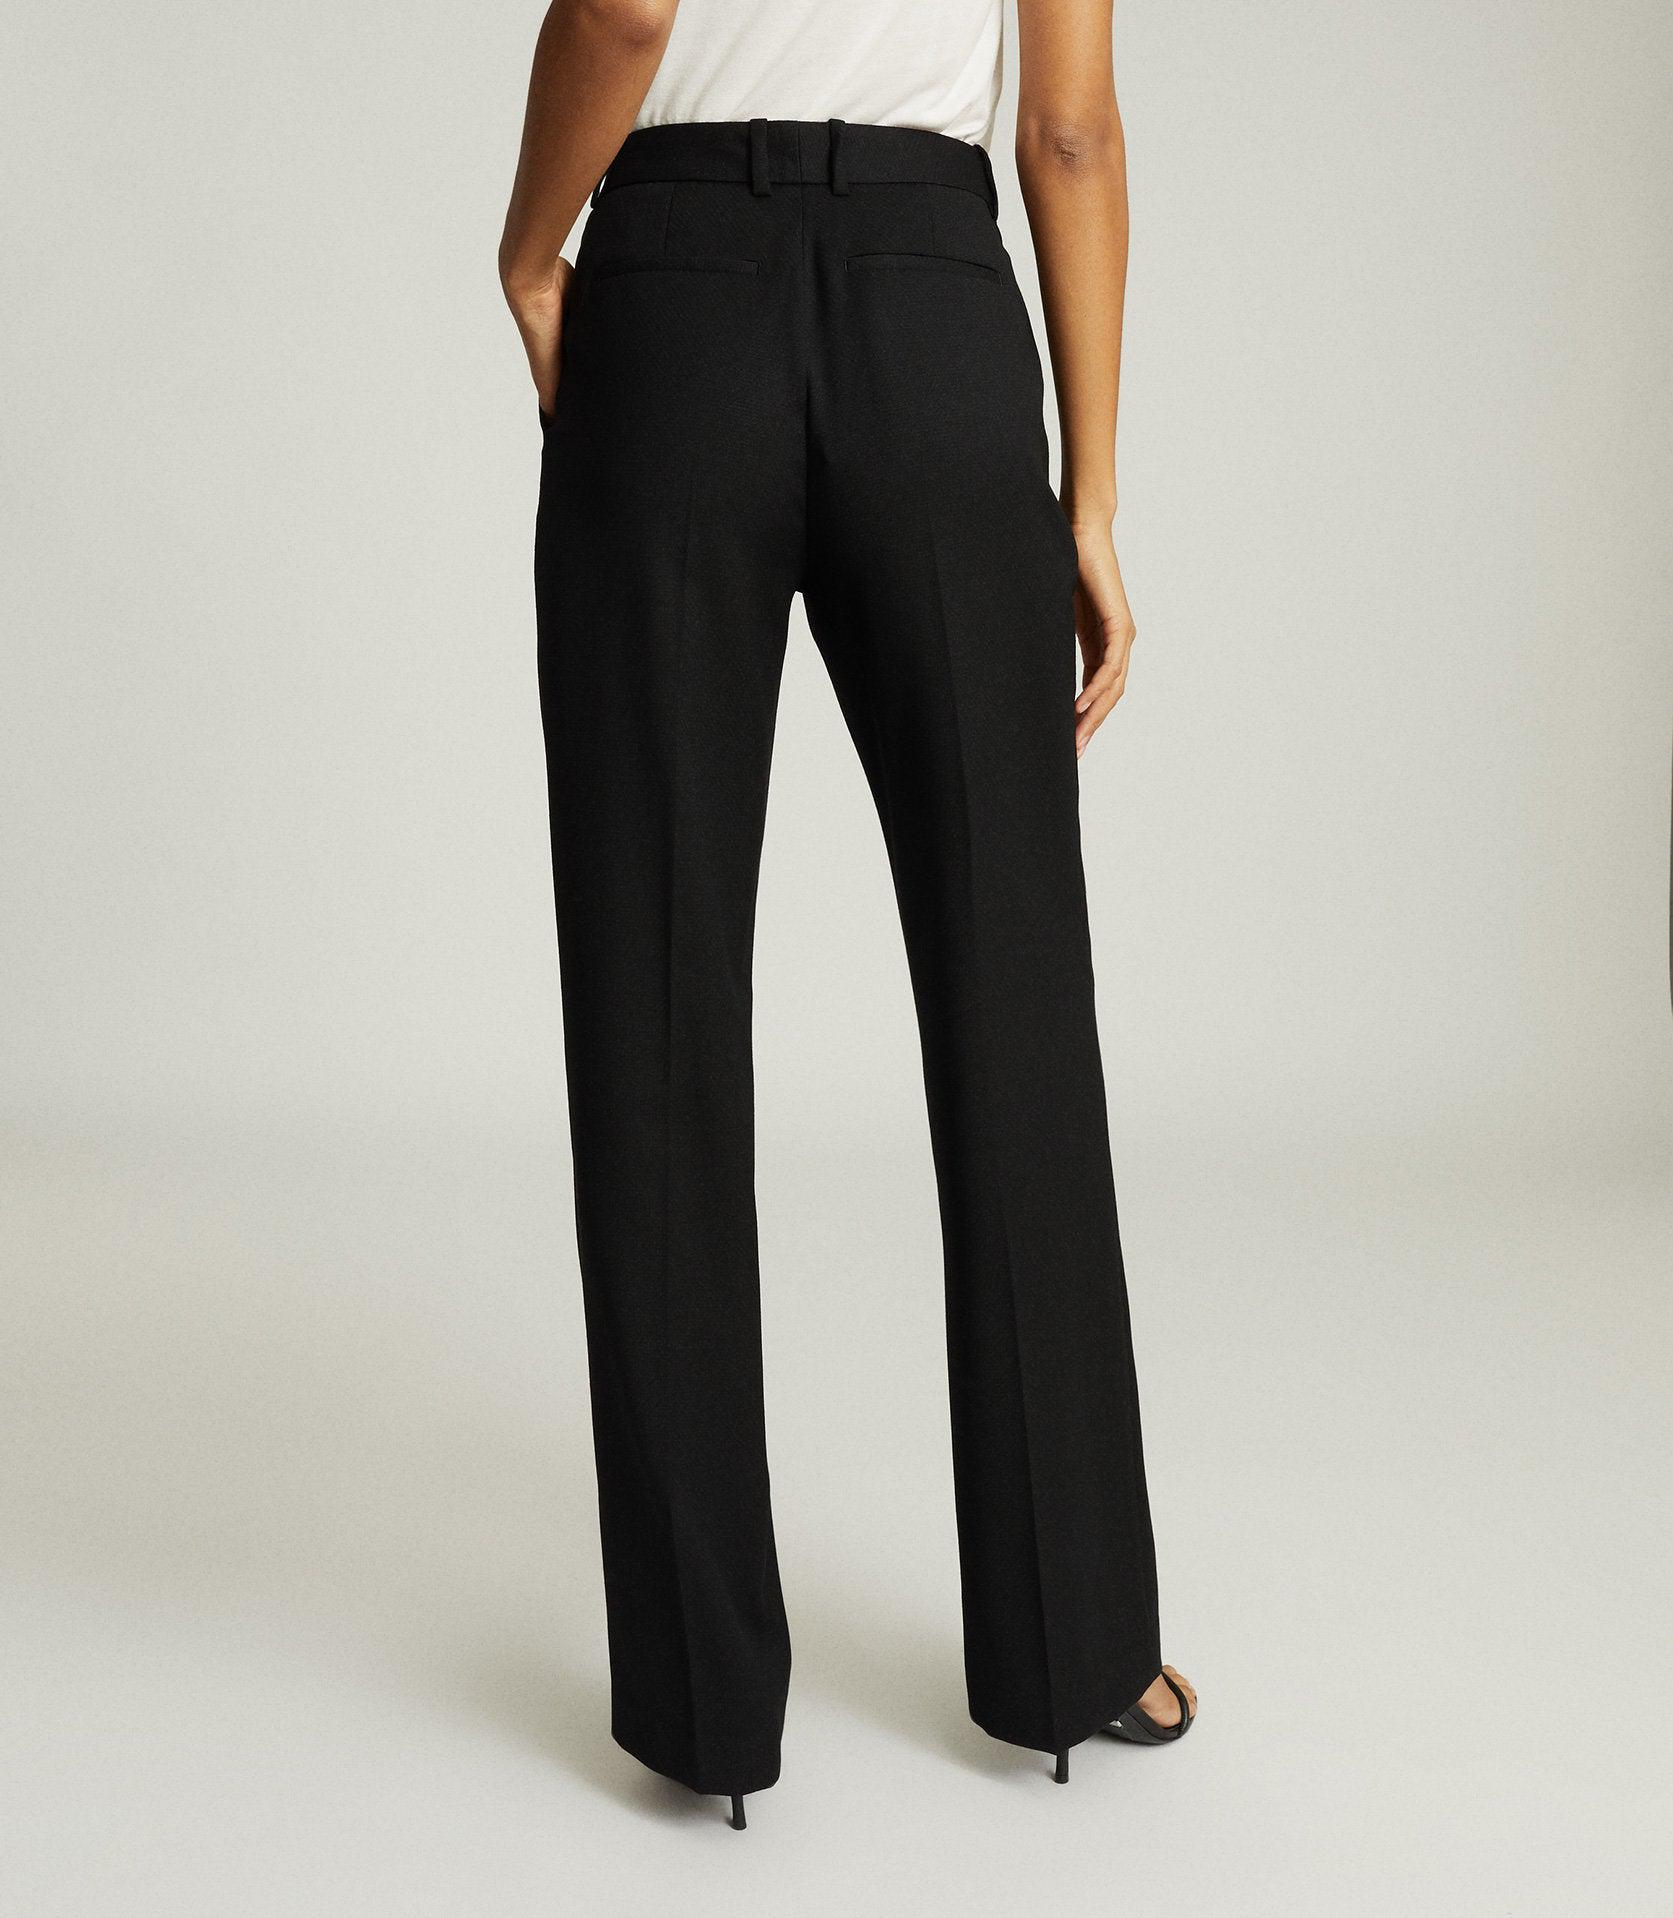 HAYES - WIDE LEG TAILORED PANTS 3